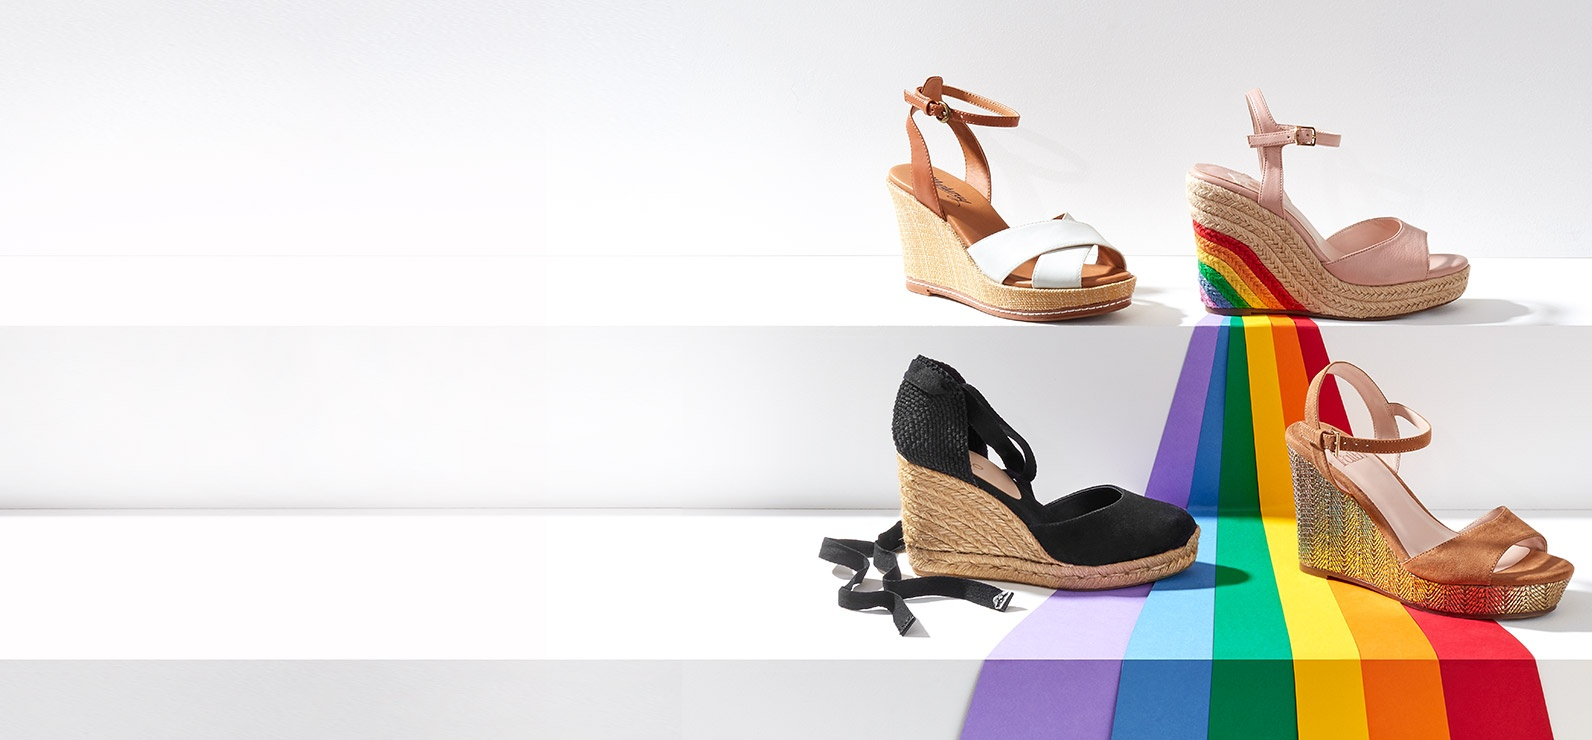 2a7e5dcad Smart steps. From luxe summer sandals, staple ankle boots and chic high  heels to ...